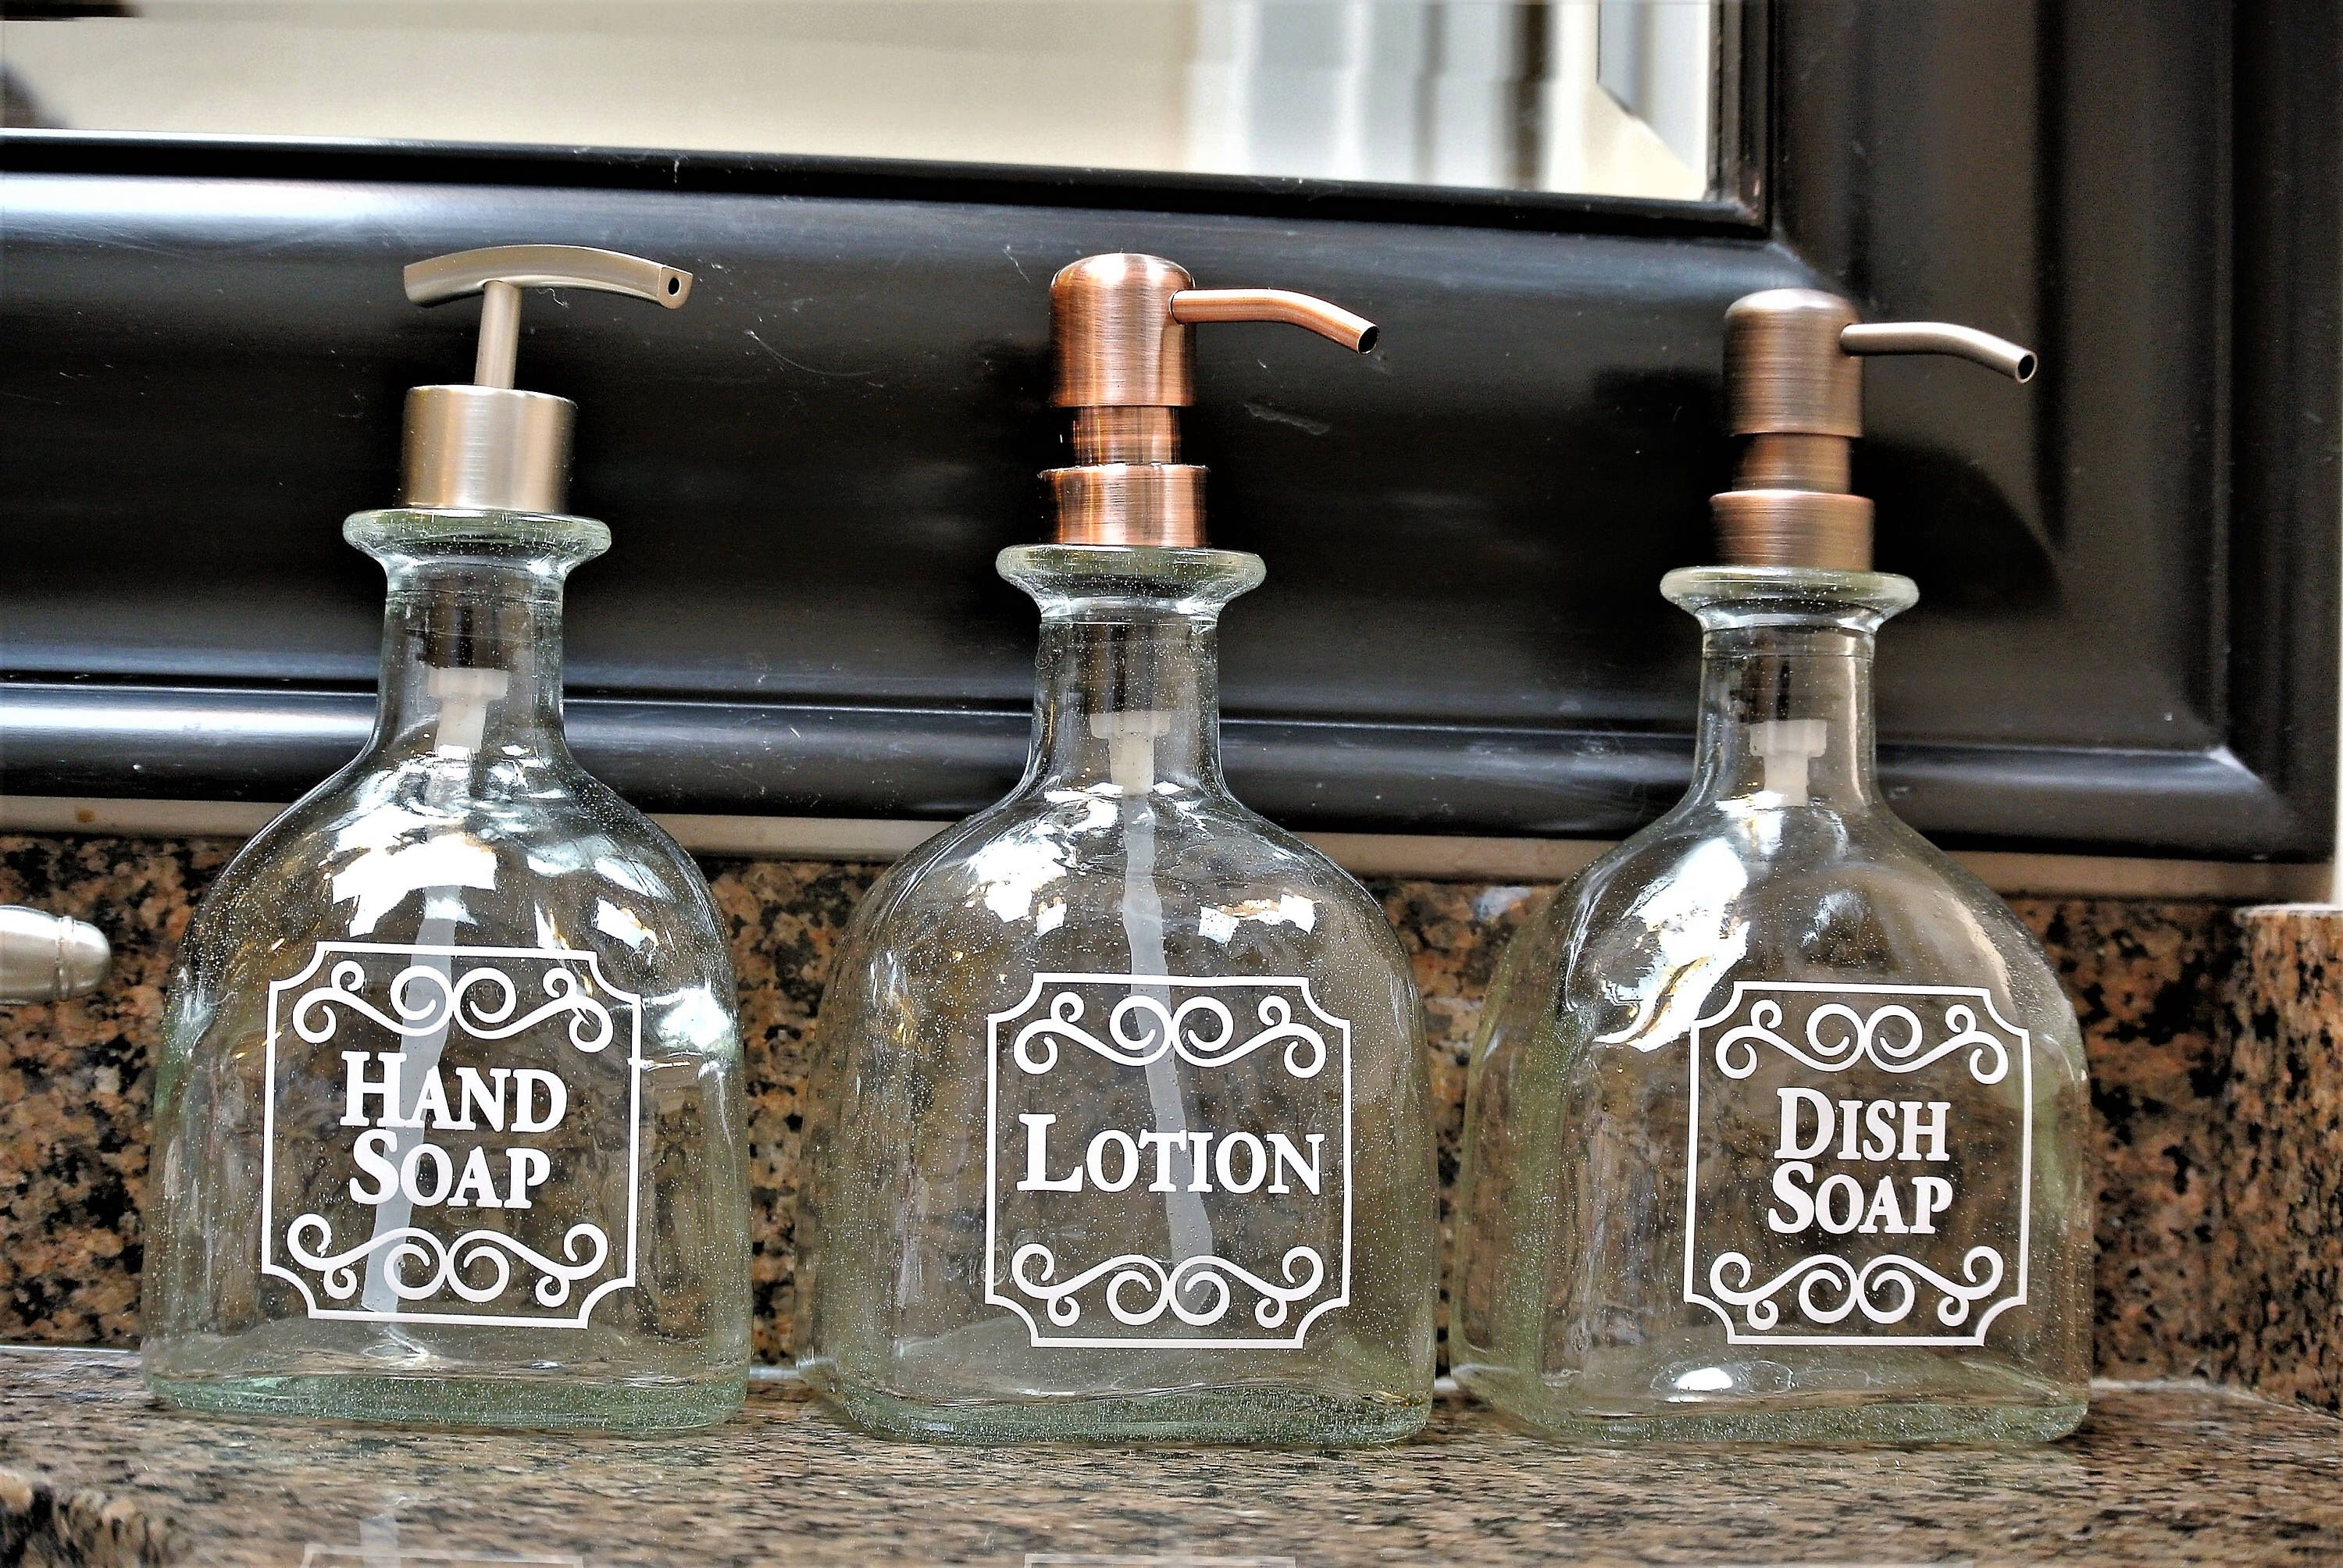 1 Patron Pump Soap Dispenser Gift Patron Bottle Dish Soap Dispenser Diy Glass Soap Dispenser Liquor Bottle Crafts